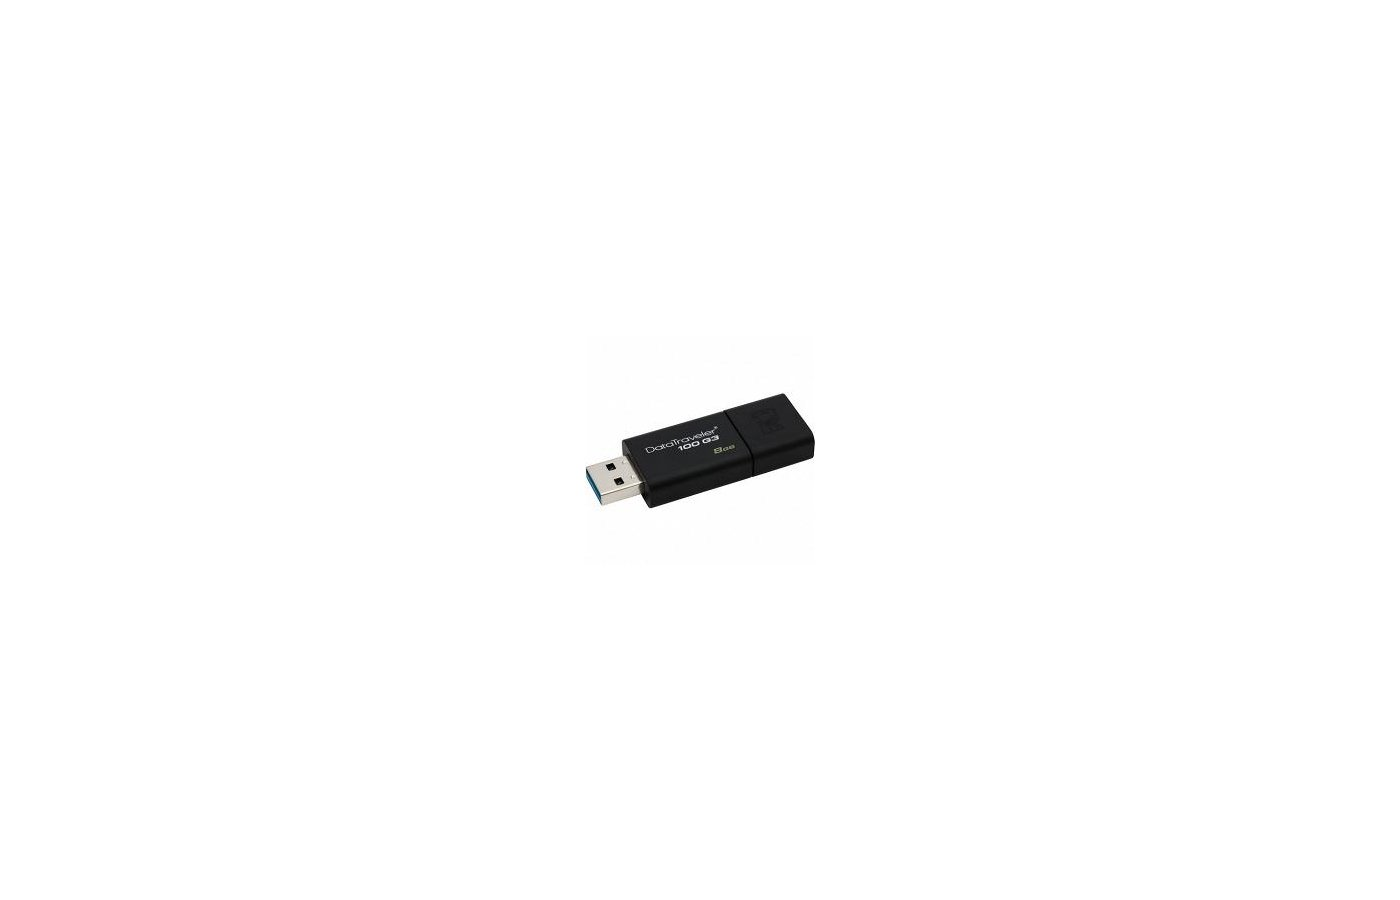 Флеш-диск Kingston 8Gb DataTraveler 100 G3 DT100G3/8GB USB3.0 черный